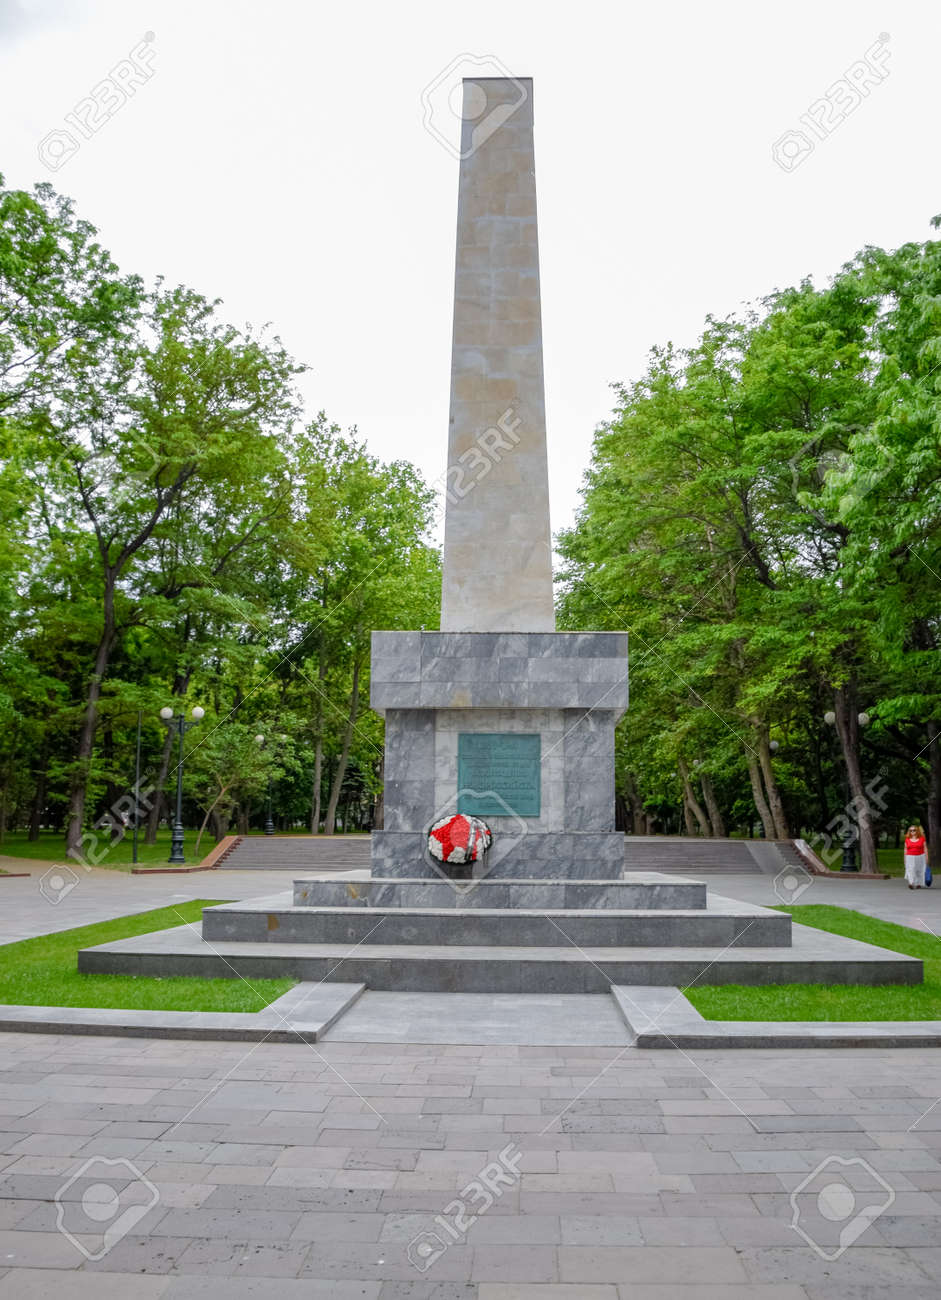 Novorossiysk, Russia - May 20, 2018: The monument, built in honor of the twentieth anniversary of the liberation of Novorossiysk from the White Guard gangs and interventionists. - 133521948